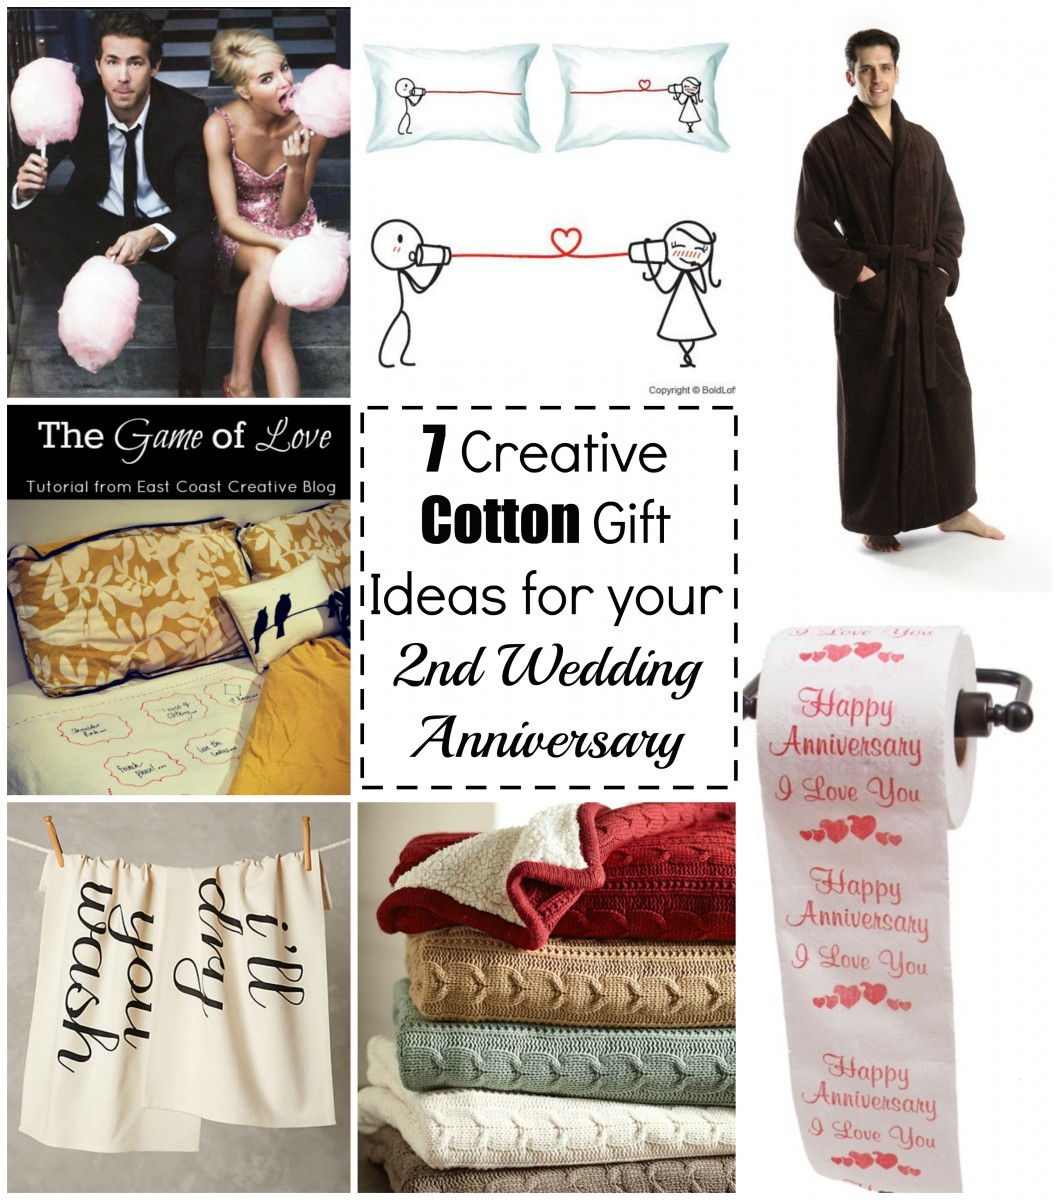 Anniversary Gifts For Her: 7 Cotton Gift Ideas For Your 2nd Wedding Anniversary